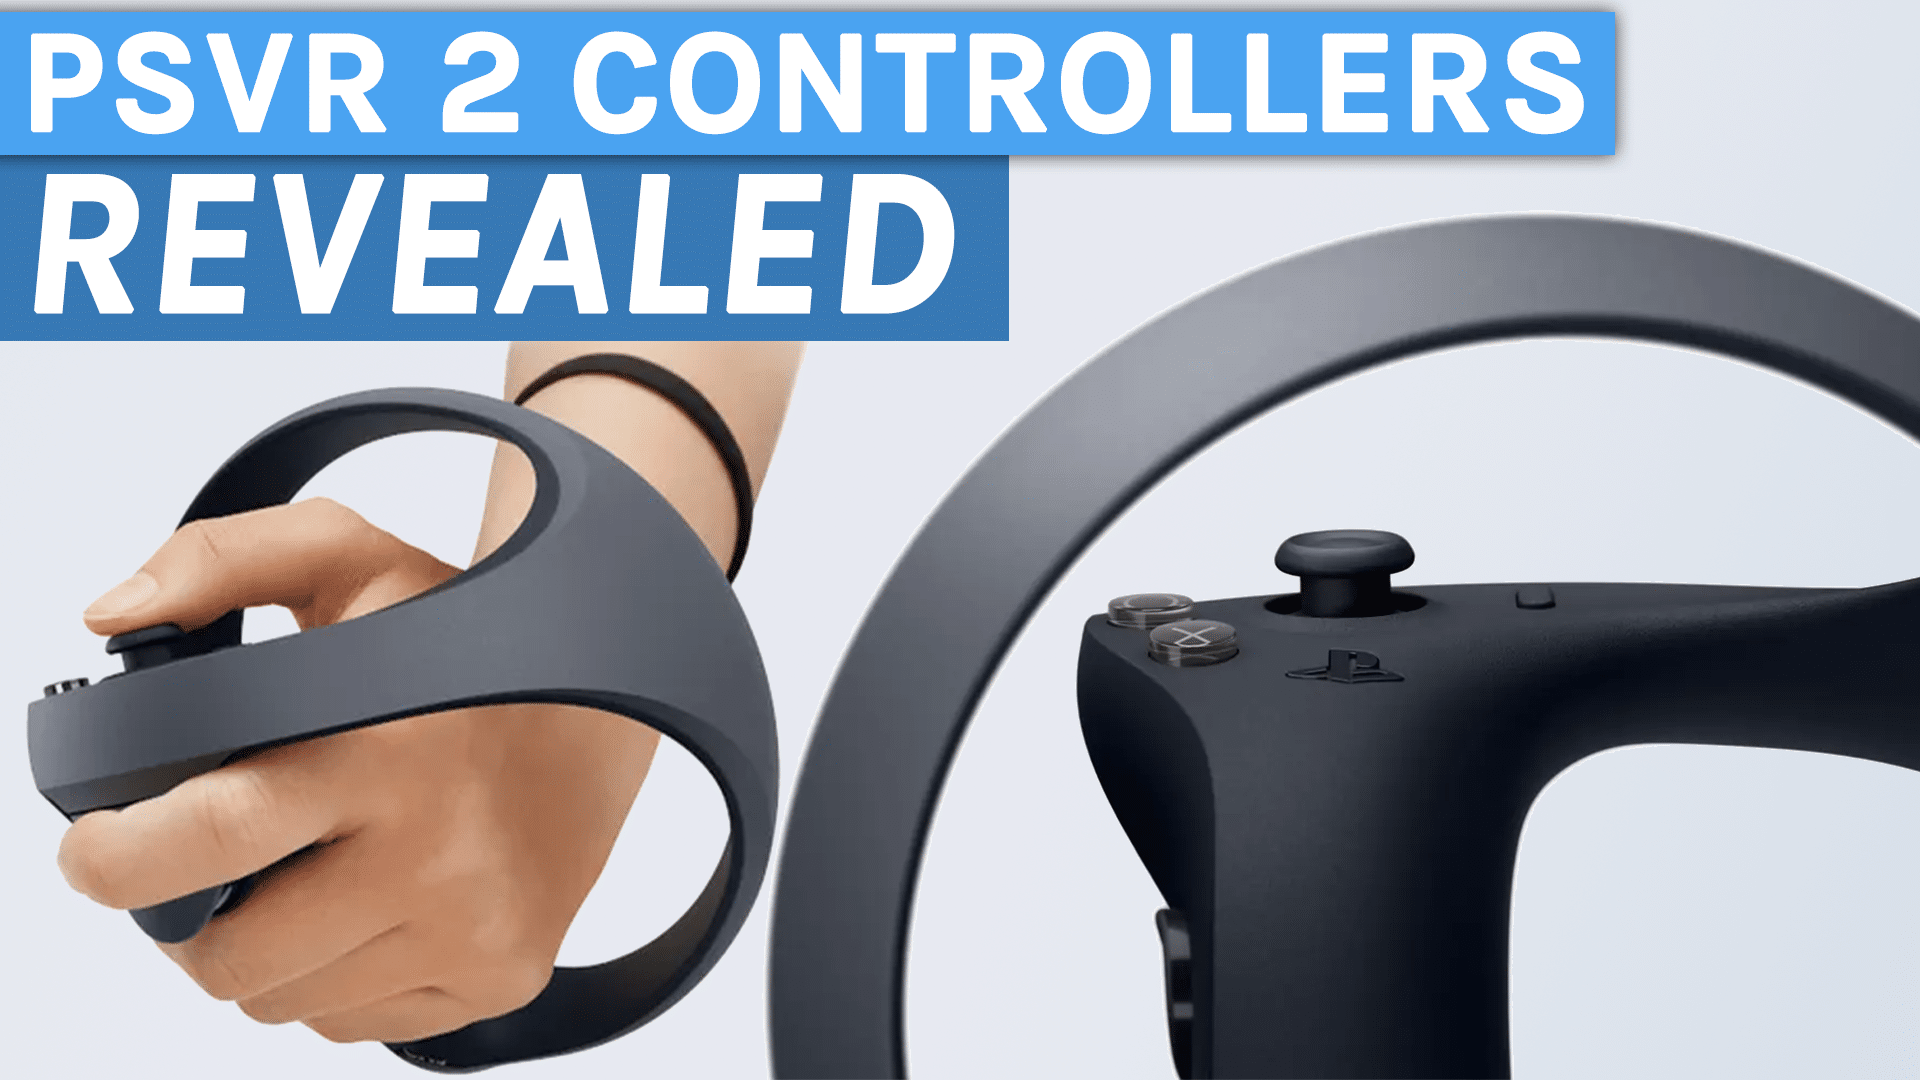 PSVR 2 CONTROLLERS REVEALED